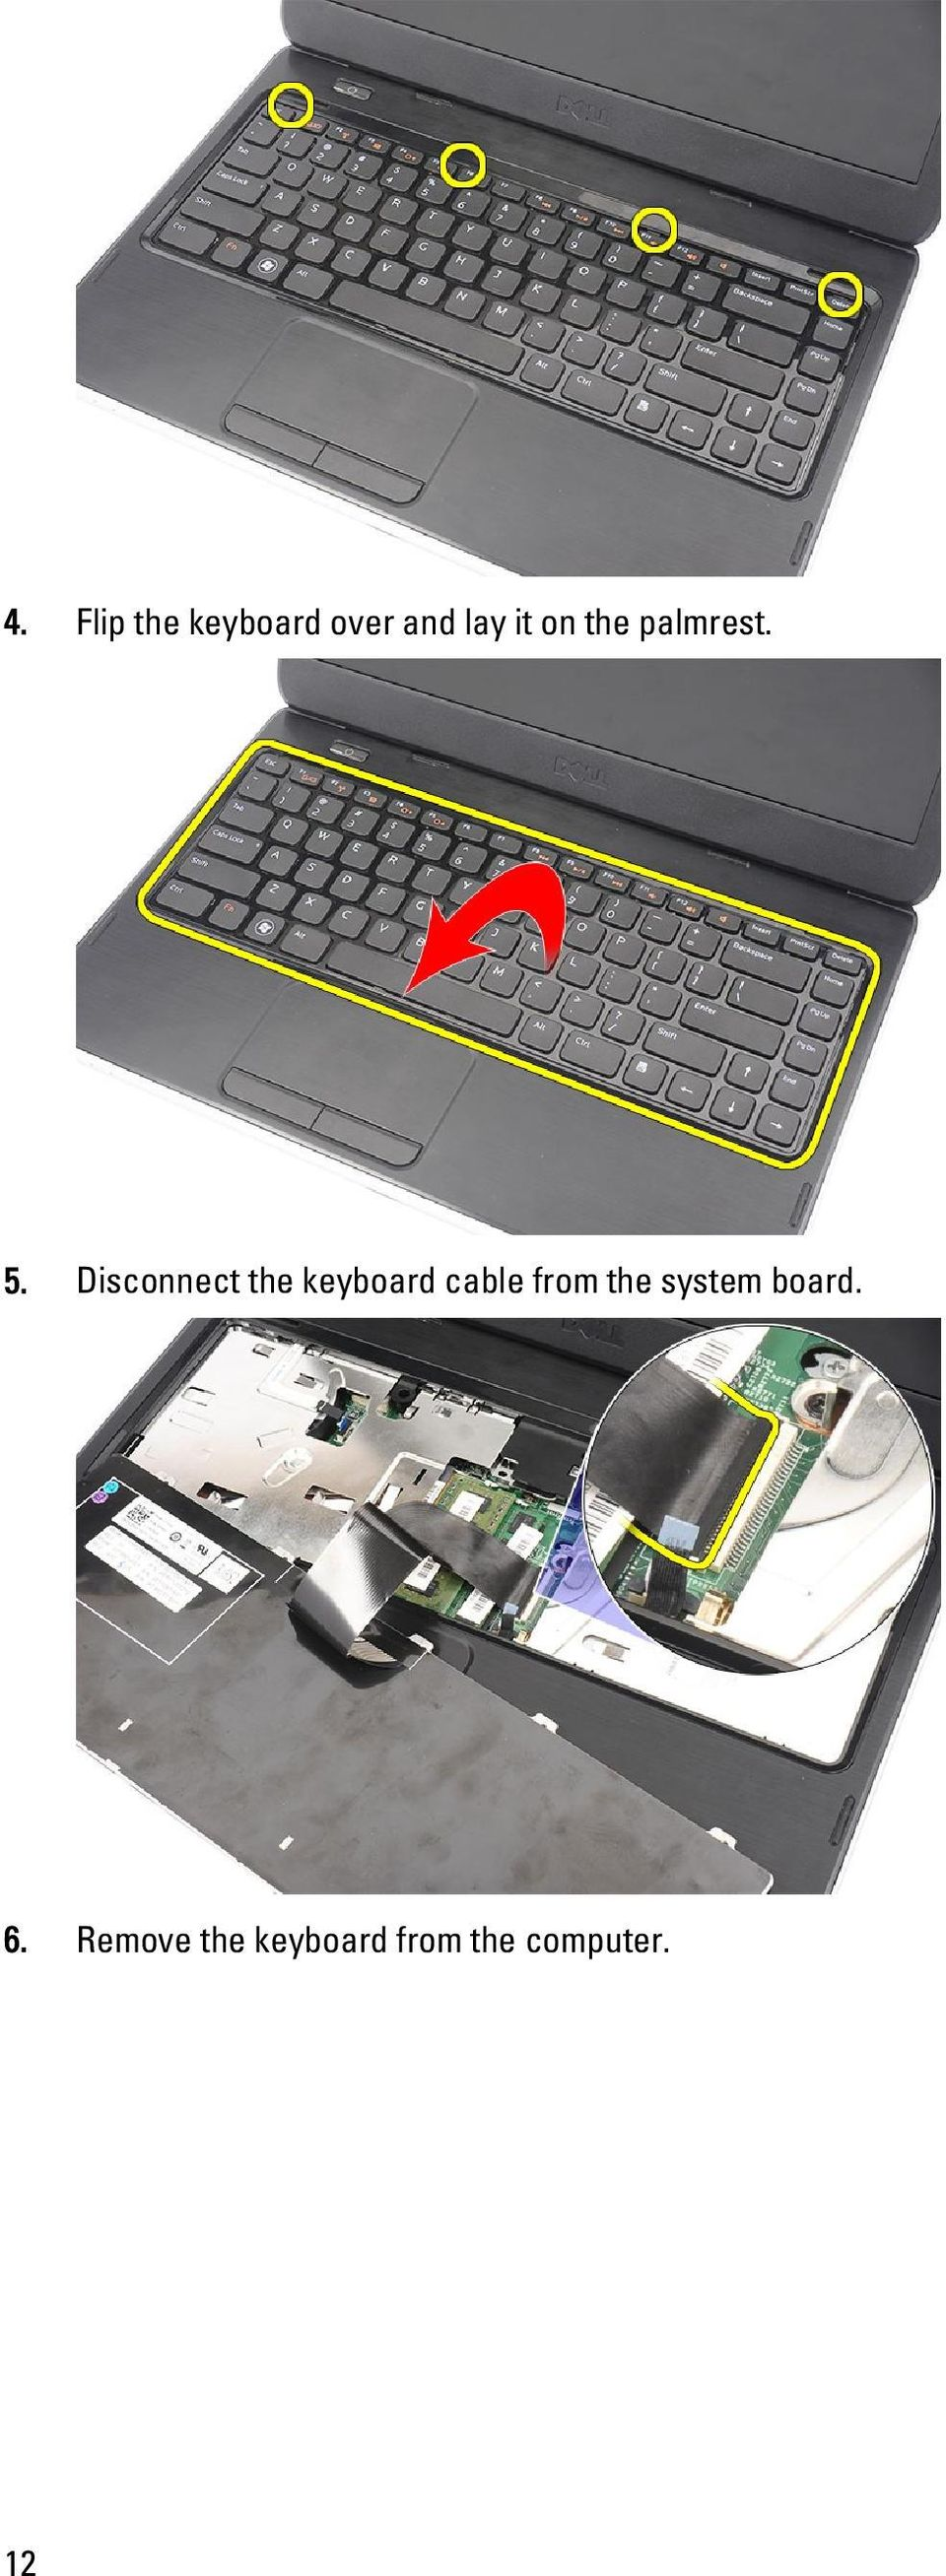 Disconnect the keyboard cable from the